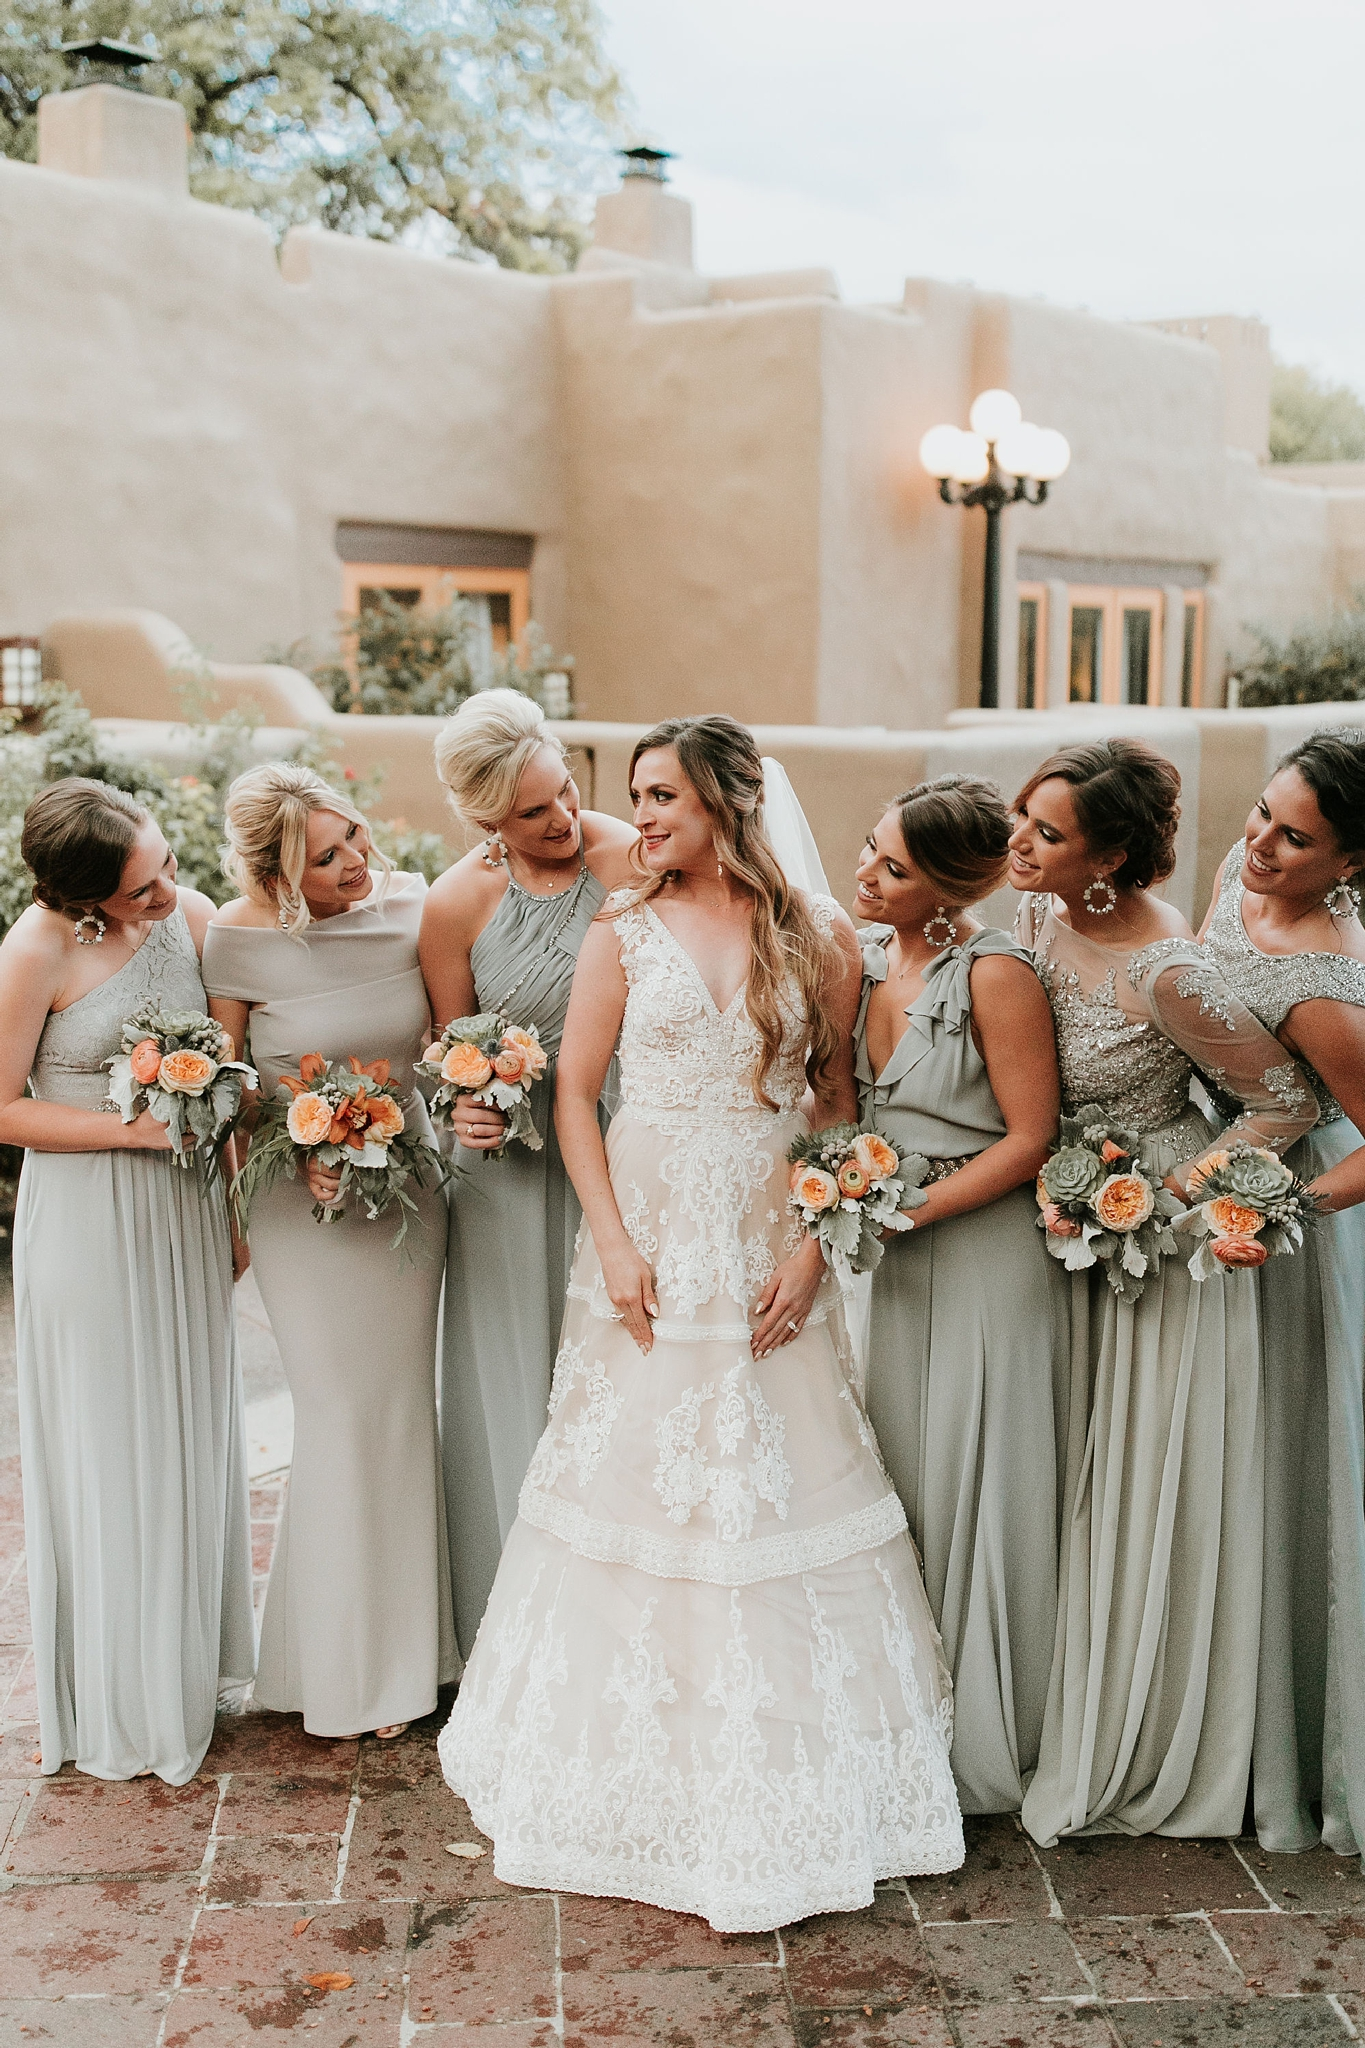 Alicia+lucia+photography+-+albuquerque+wedding+photographer+-+santa+fe+wedding+photography+-+new+mexico+wedding+photographer+-+new+mexico+wedding+-+new+mexico+wedding+-+colorado+wedding+-+bridesmaids+-+bridesmaid+style_0021.jpg